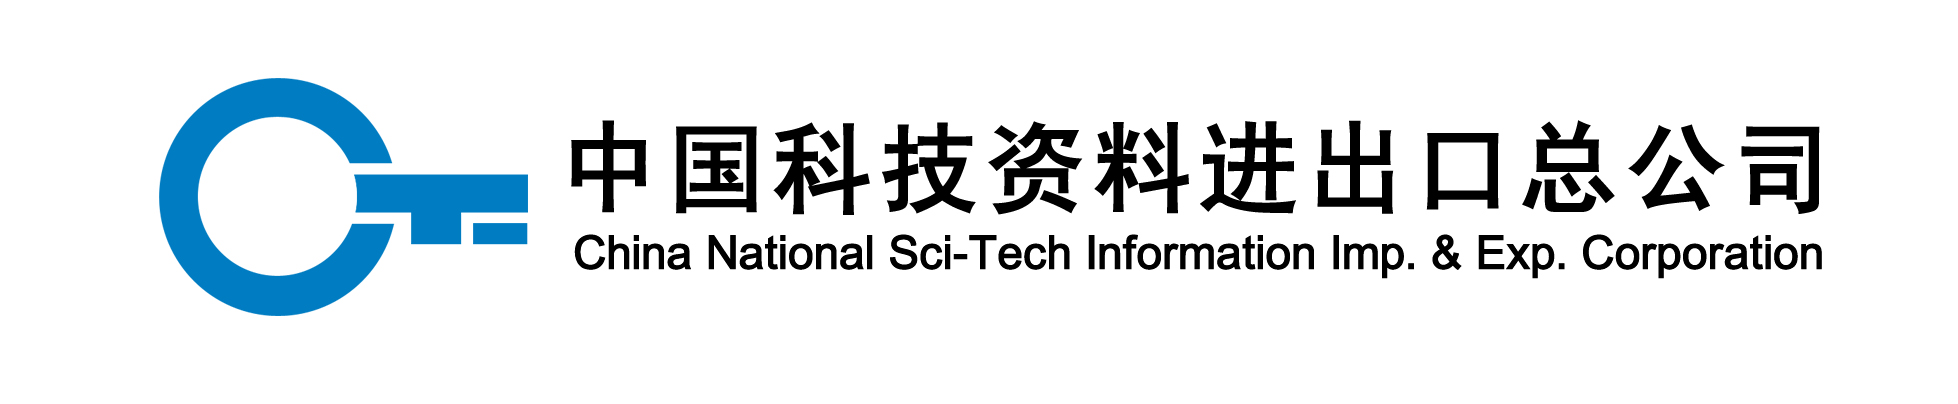 SciTech China logo